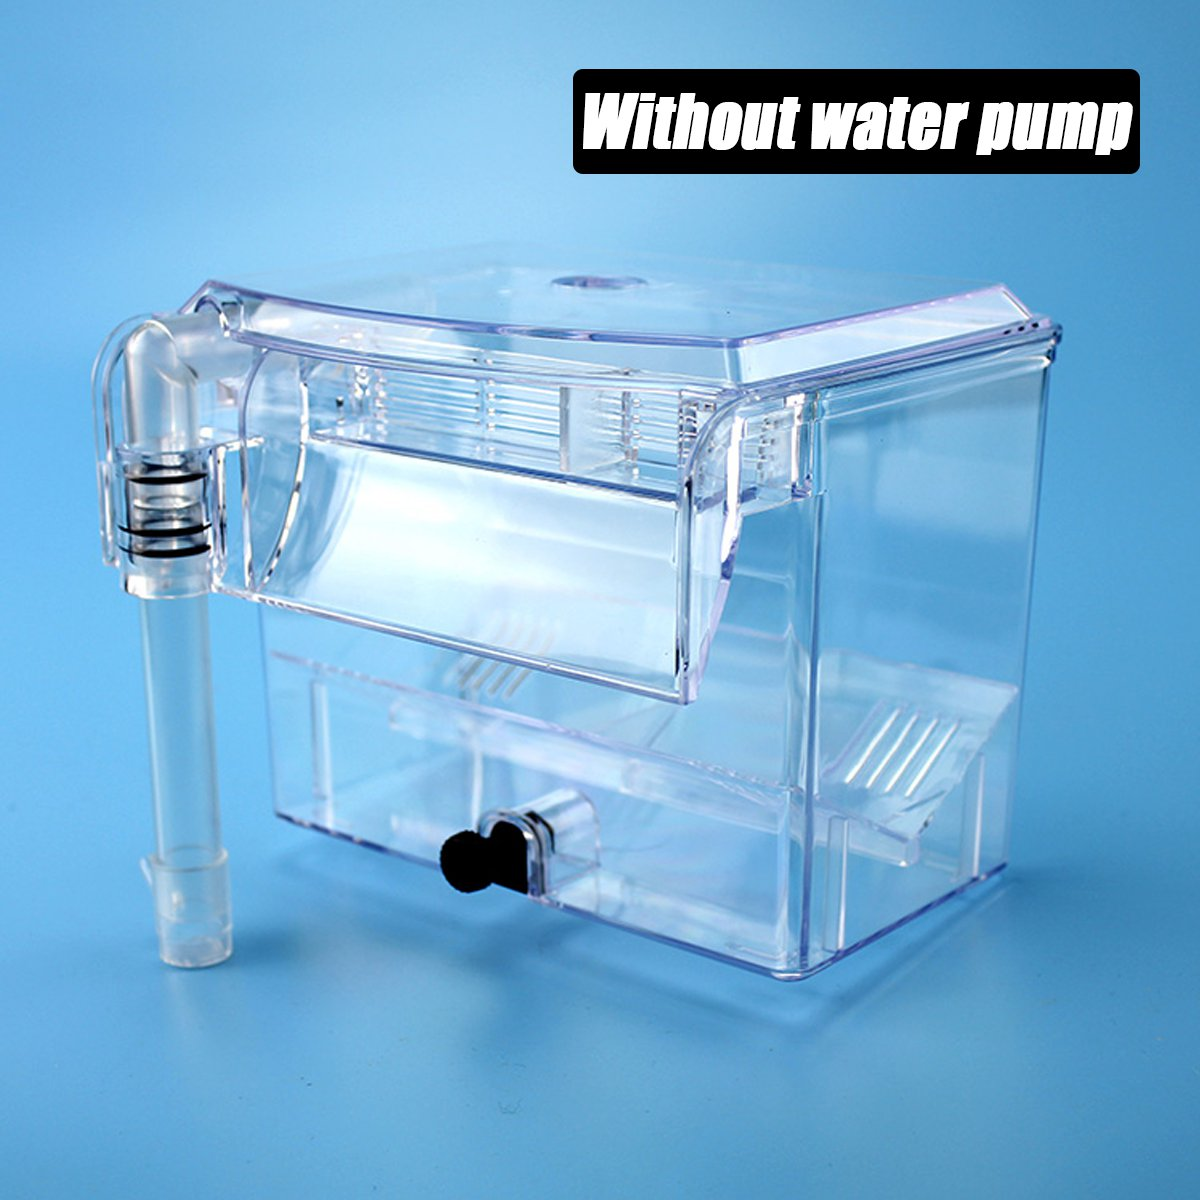 Without Pump